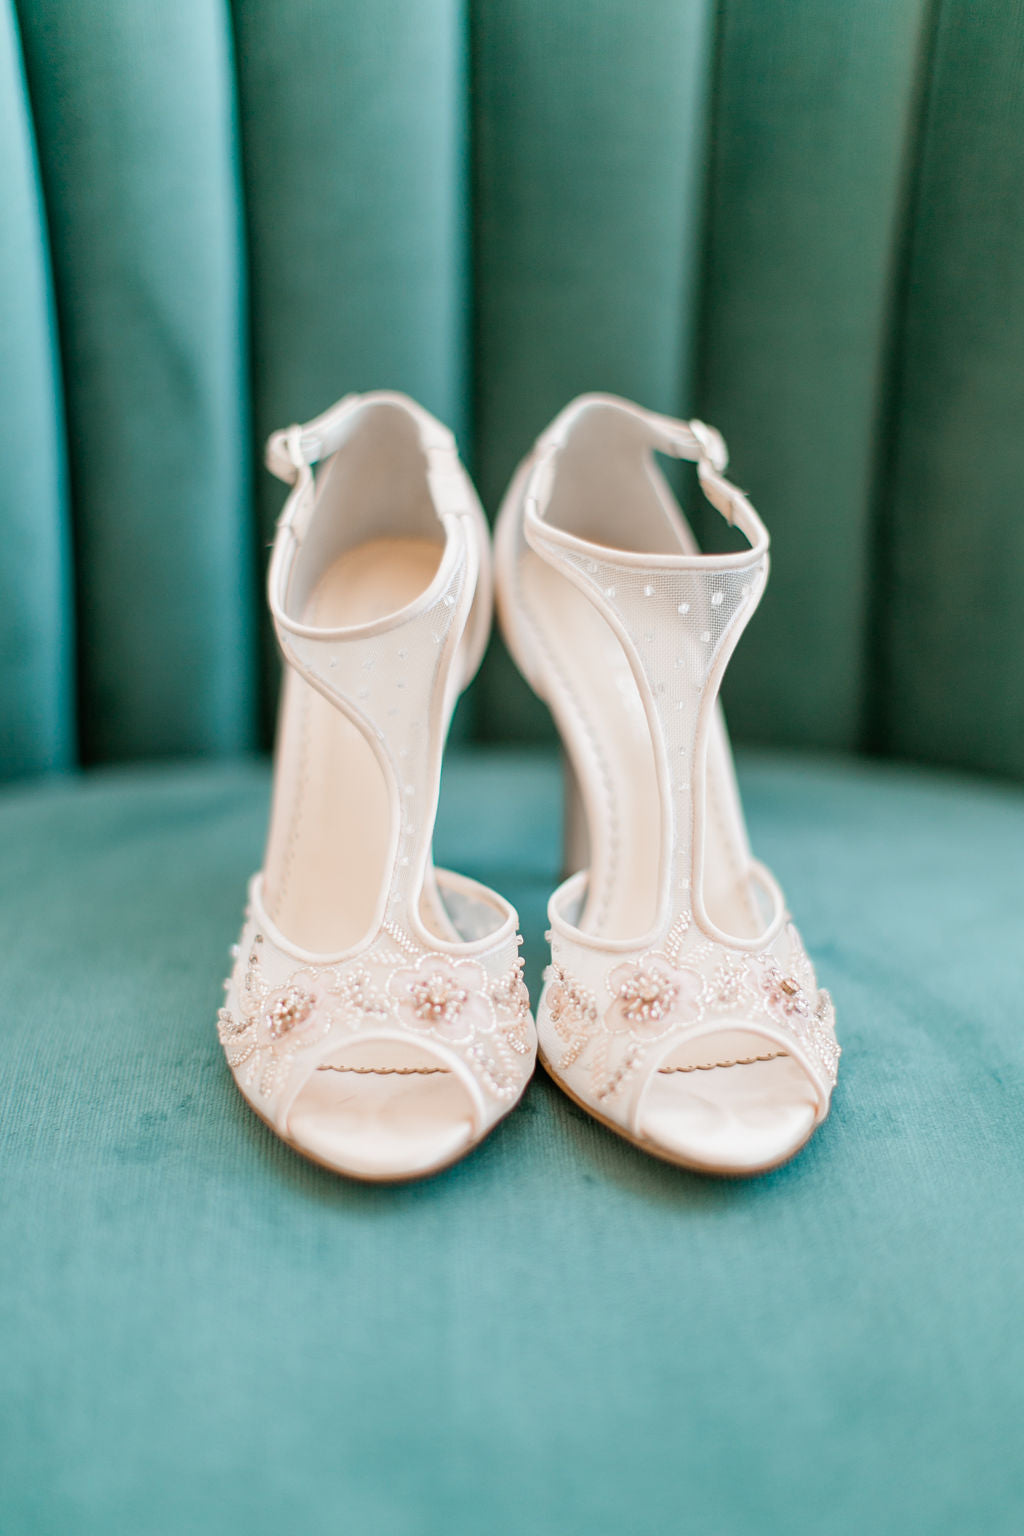 Bella Belle 2020 wedding trends winter wedding open toe wedding shoes